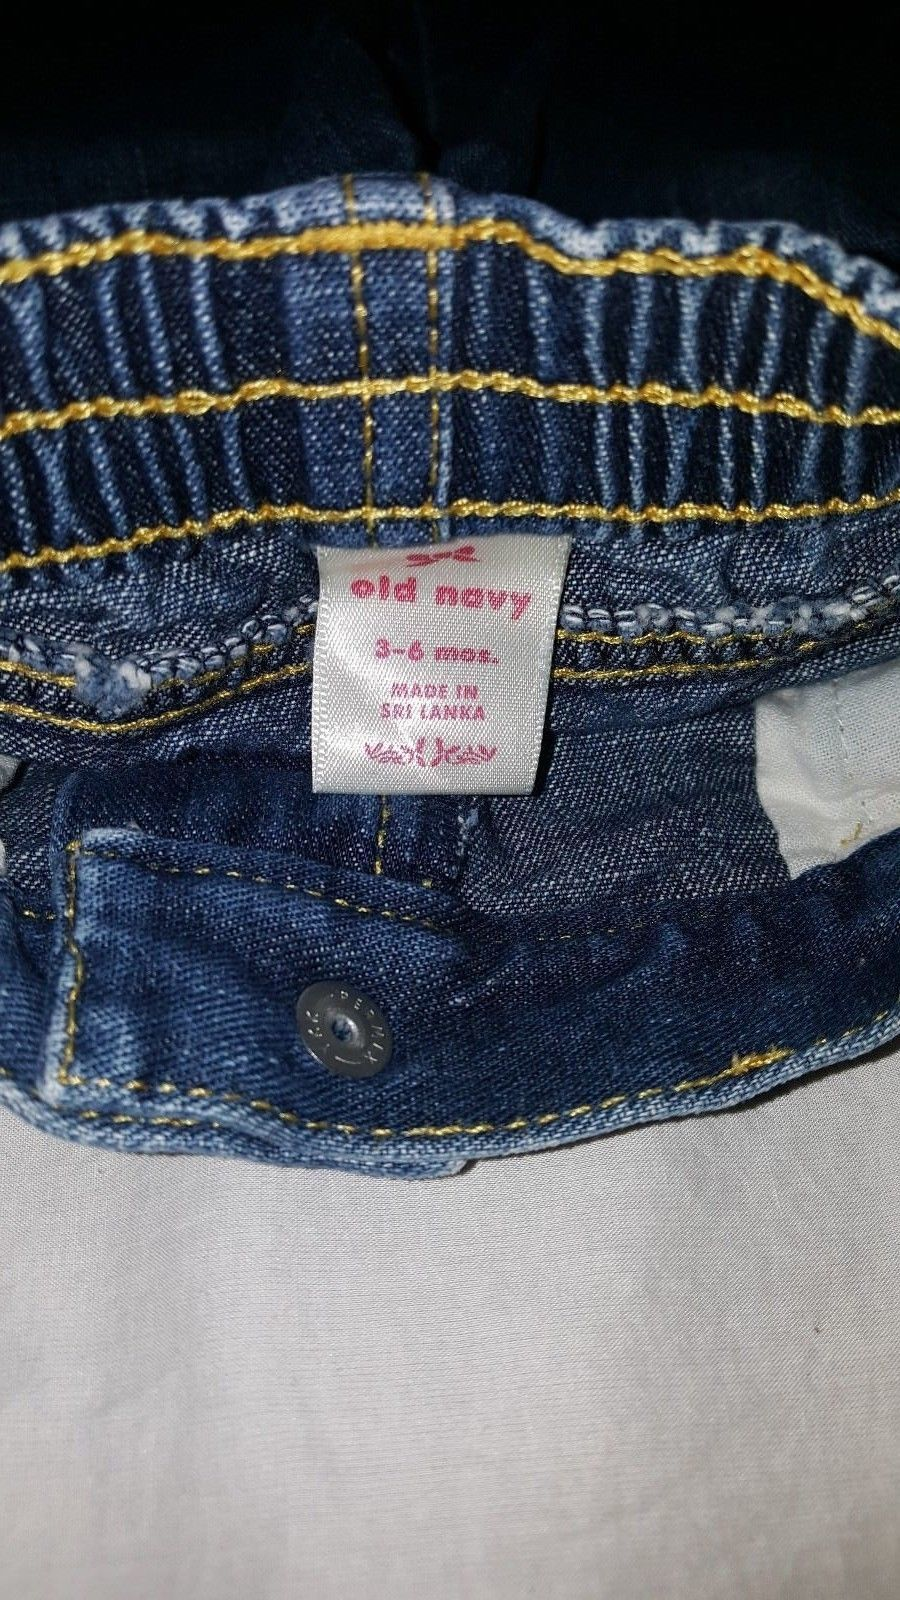 Blue Jeans Denim  Size 3 / 6 Months Girls Old Navy Pull On Baby